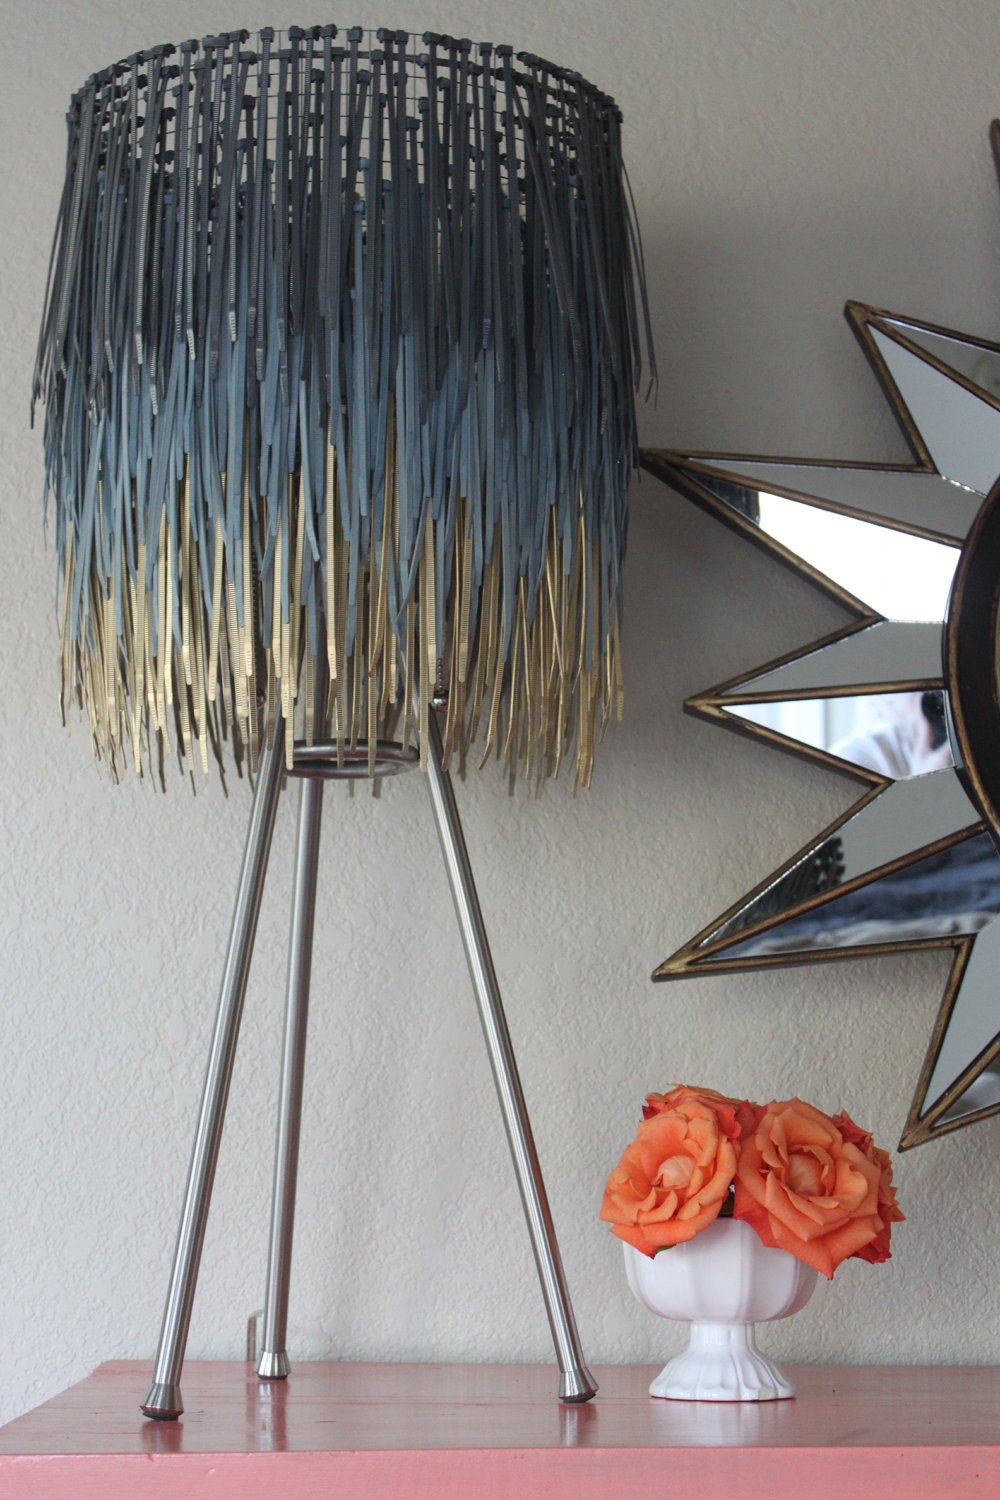 Like it? Learn how to make your very own Zip Tie (YES ZIP TIE!) lamp shade here!